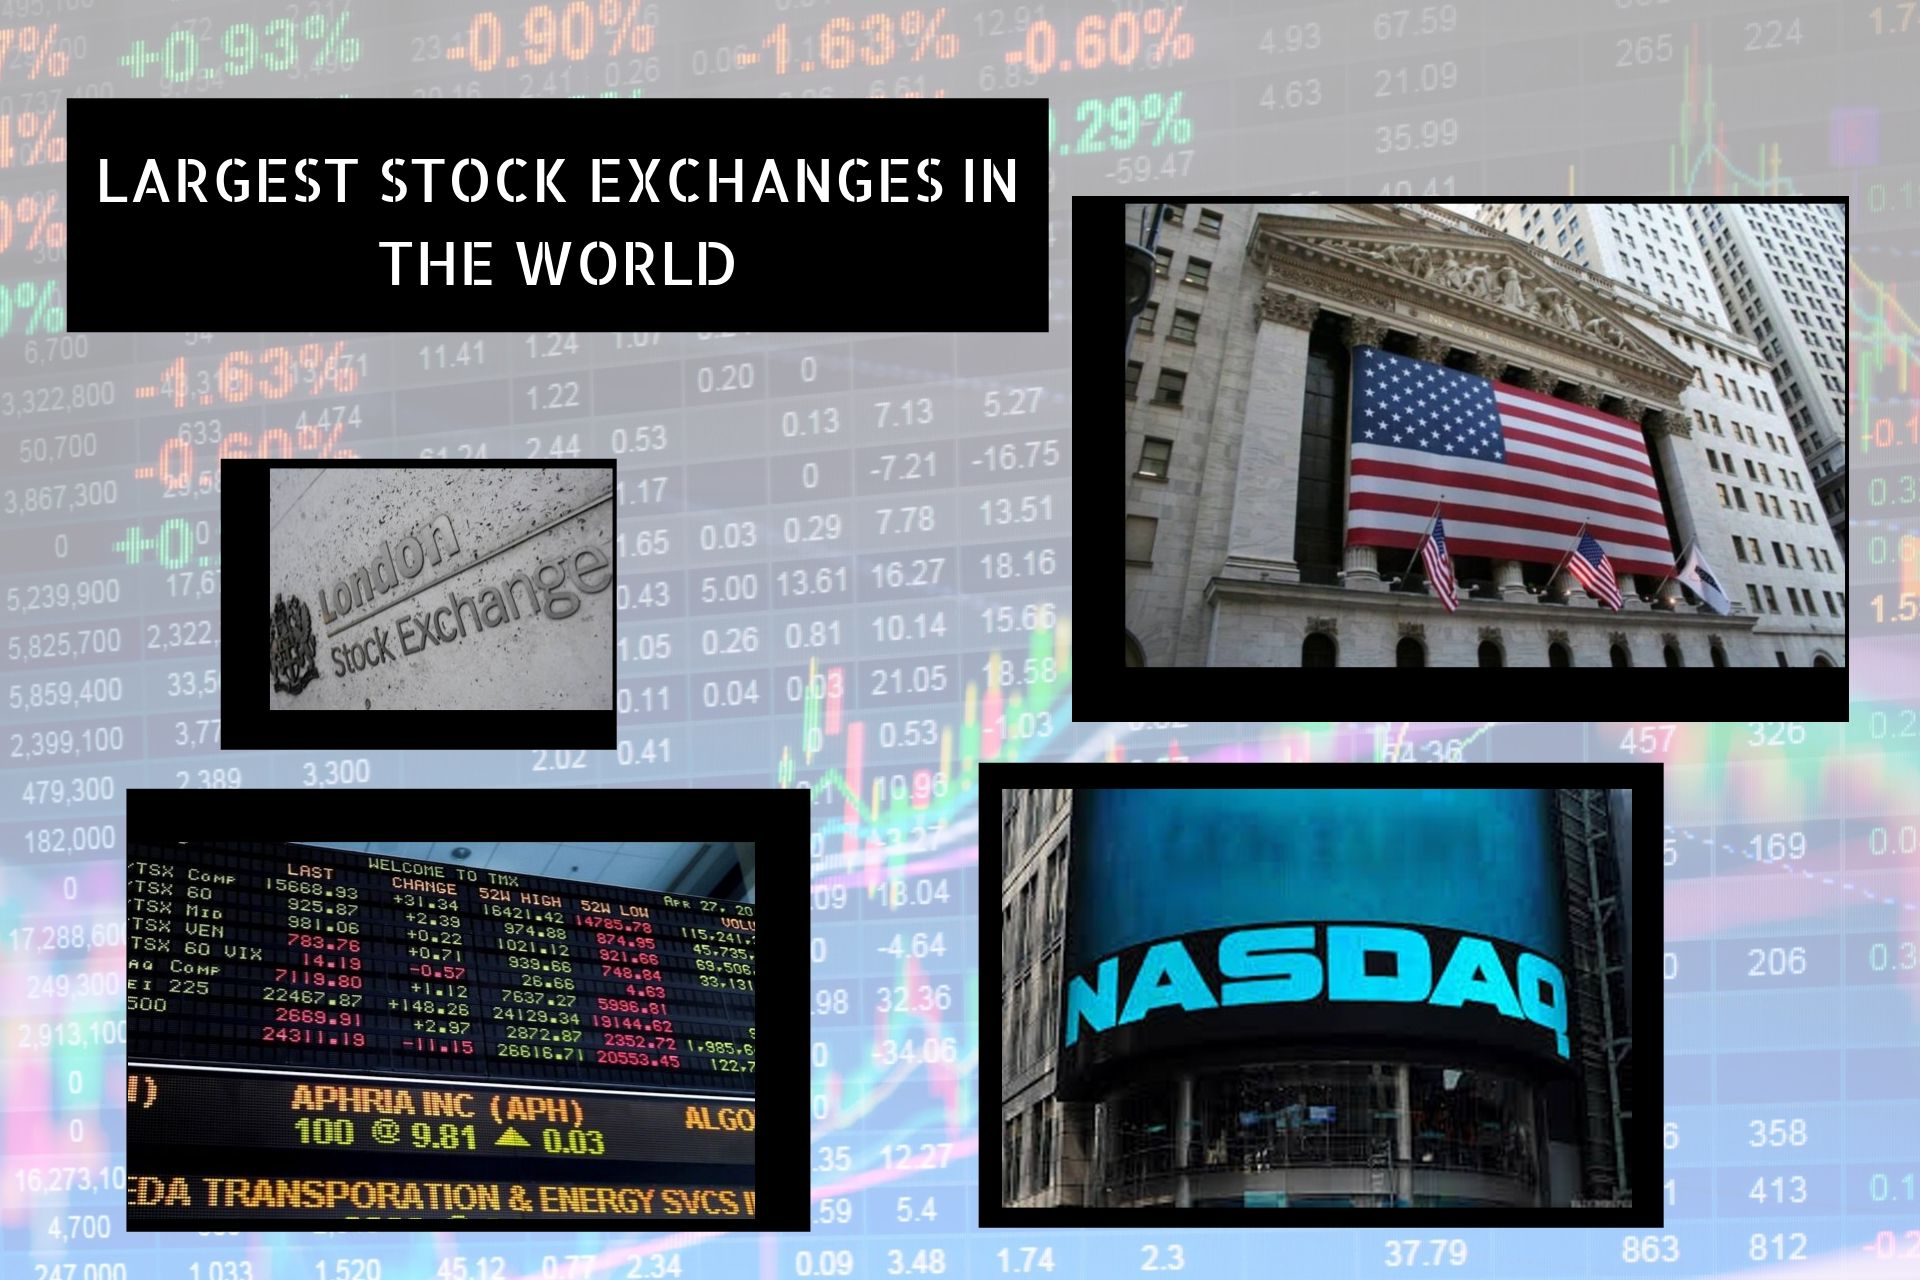 list of 10 largest stock exchange's image